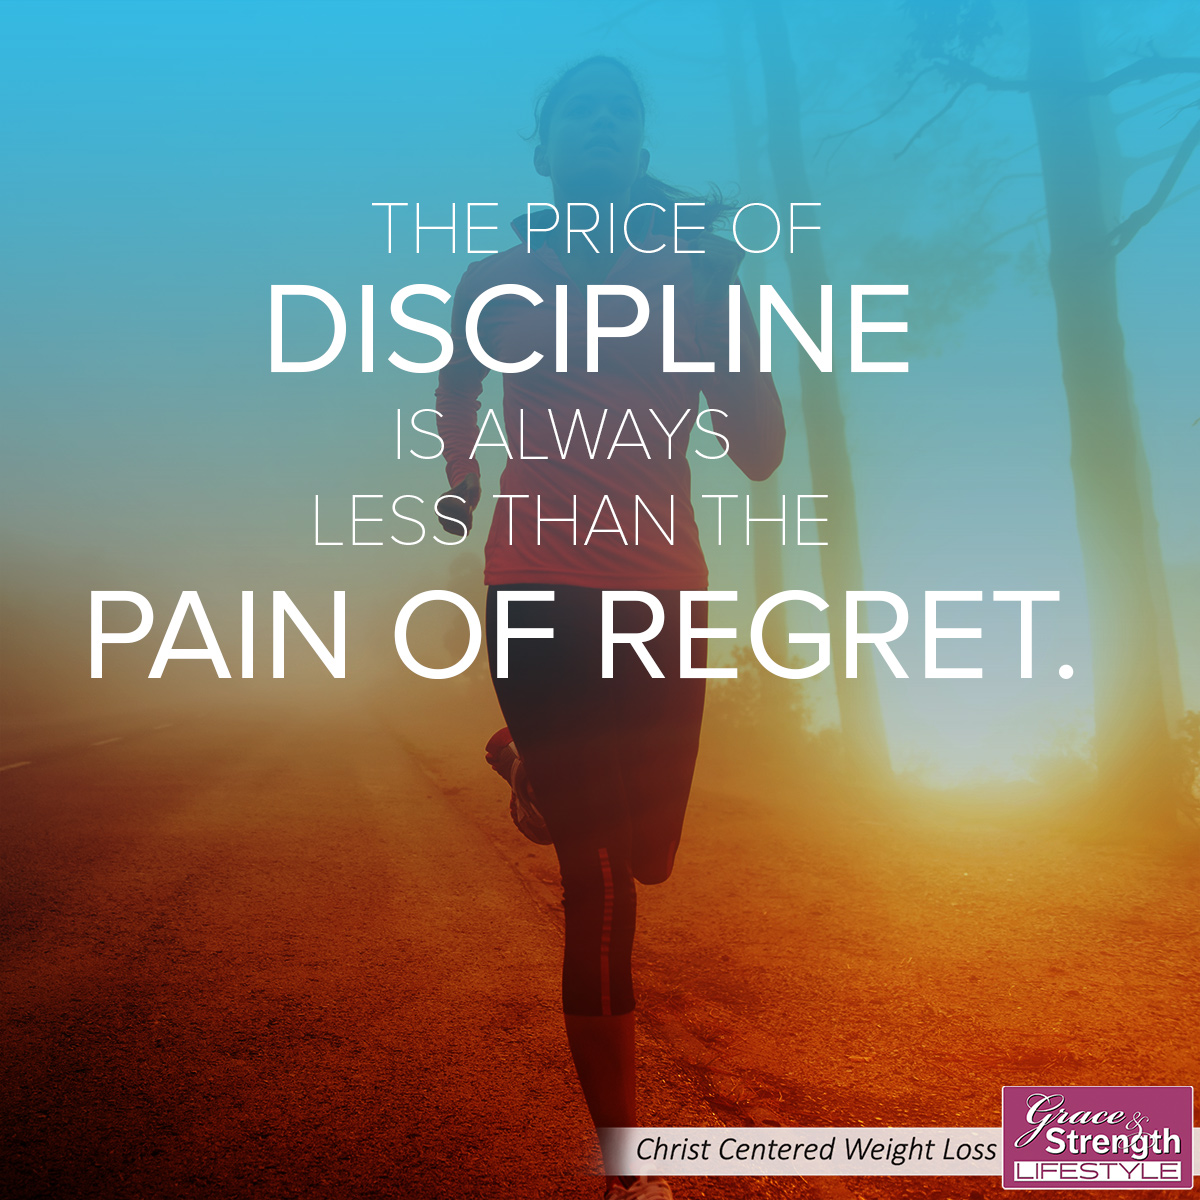 the-price-of-discipline-is-always-less-than-the-pain-of-regret-grace-and-strength-lifestyle-christian-weight-loss